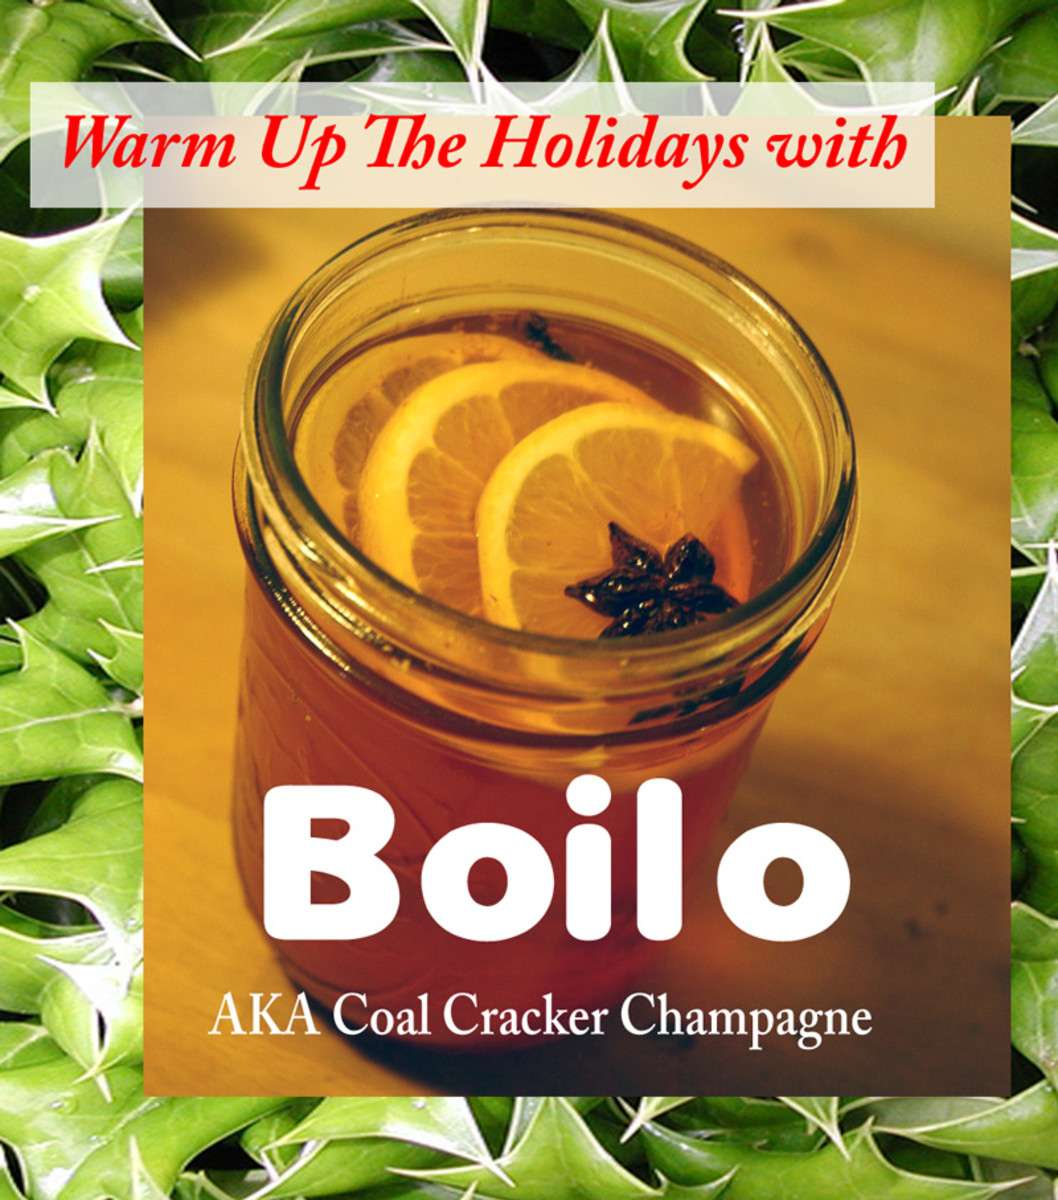 How to Make Boilo: A Pennsylvania Holiday Beverage